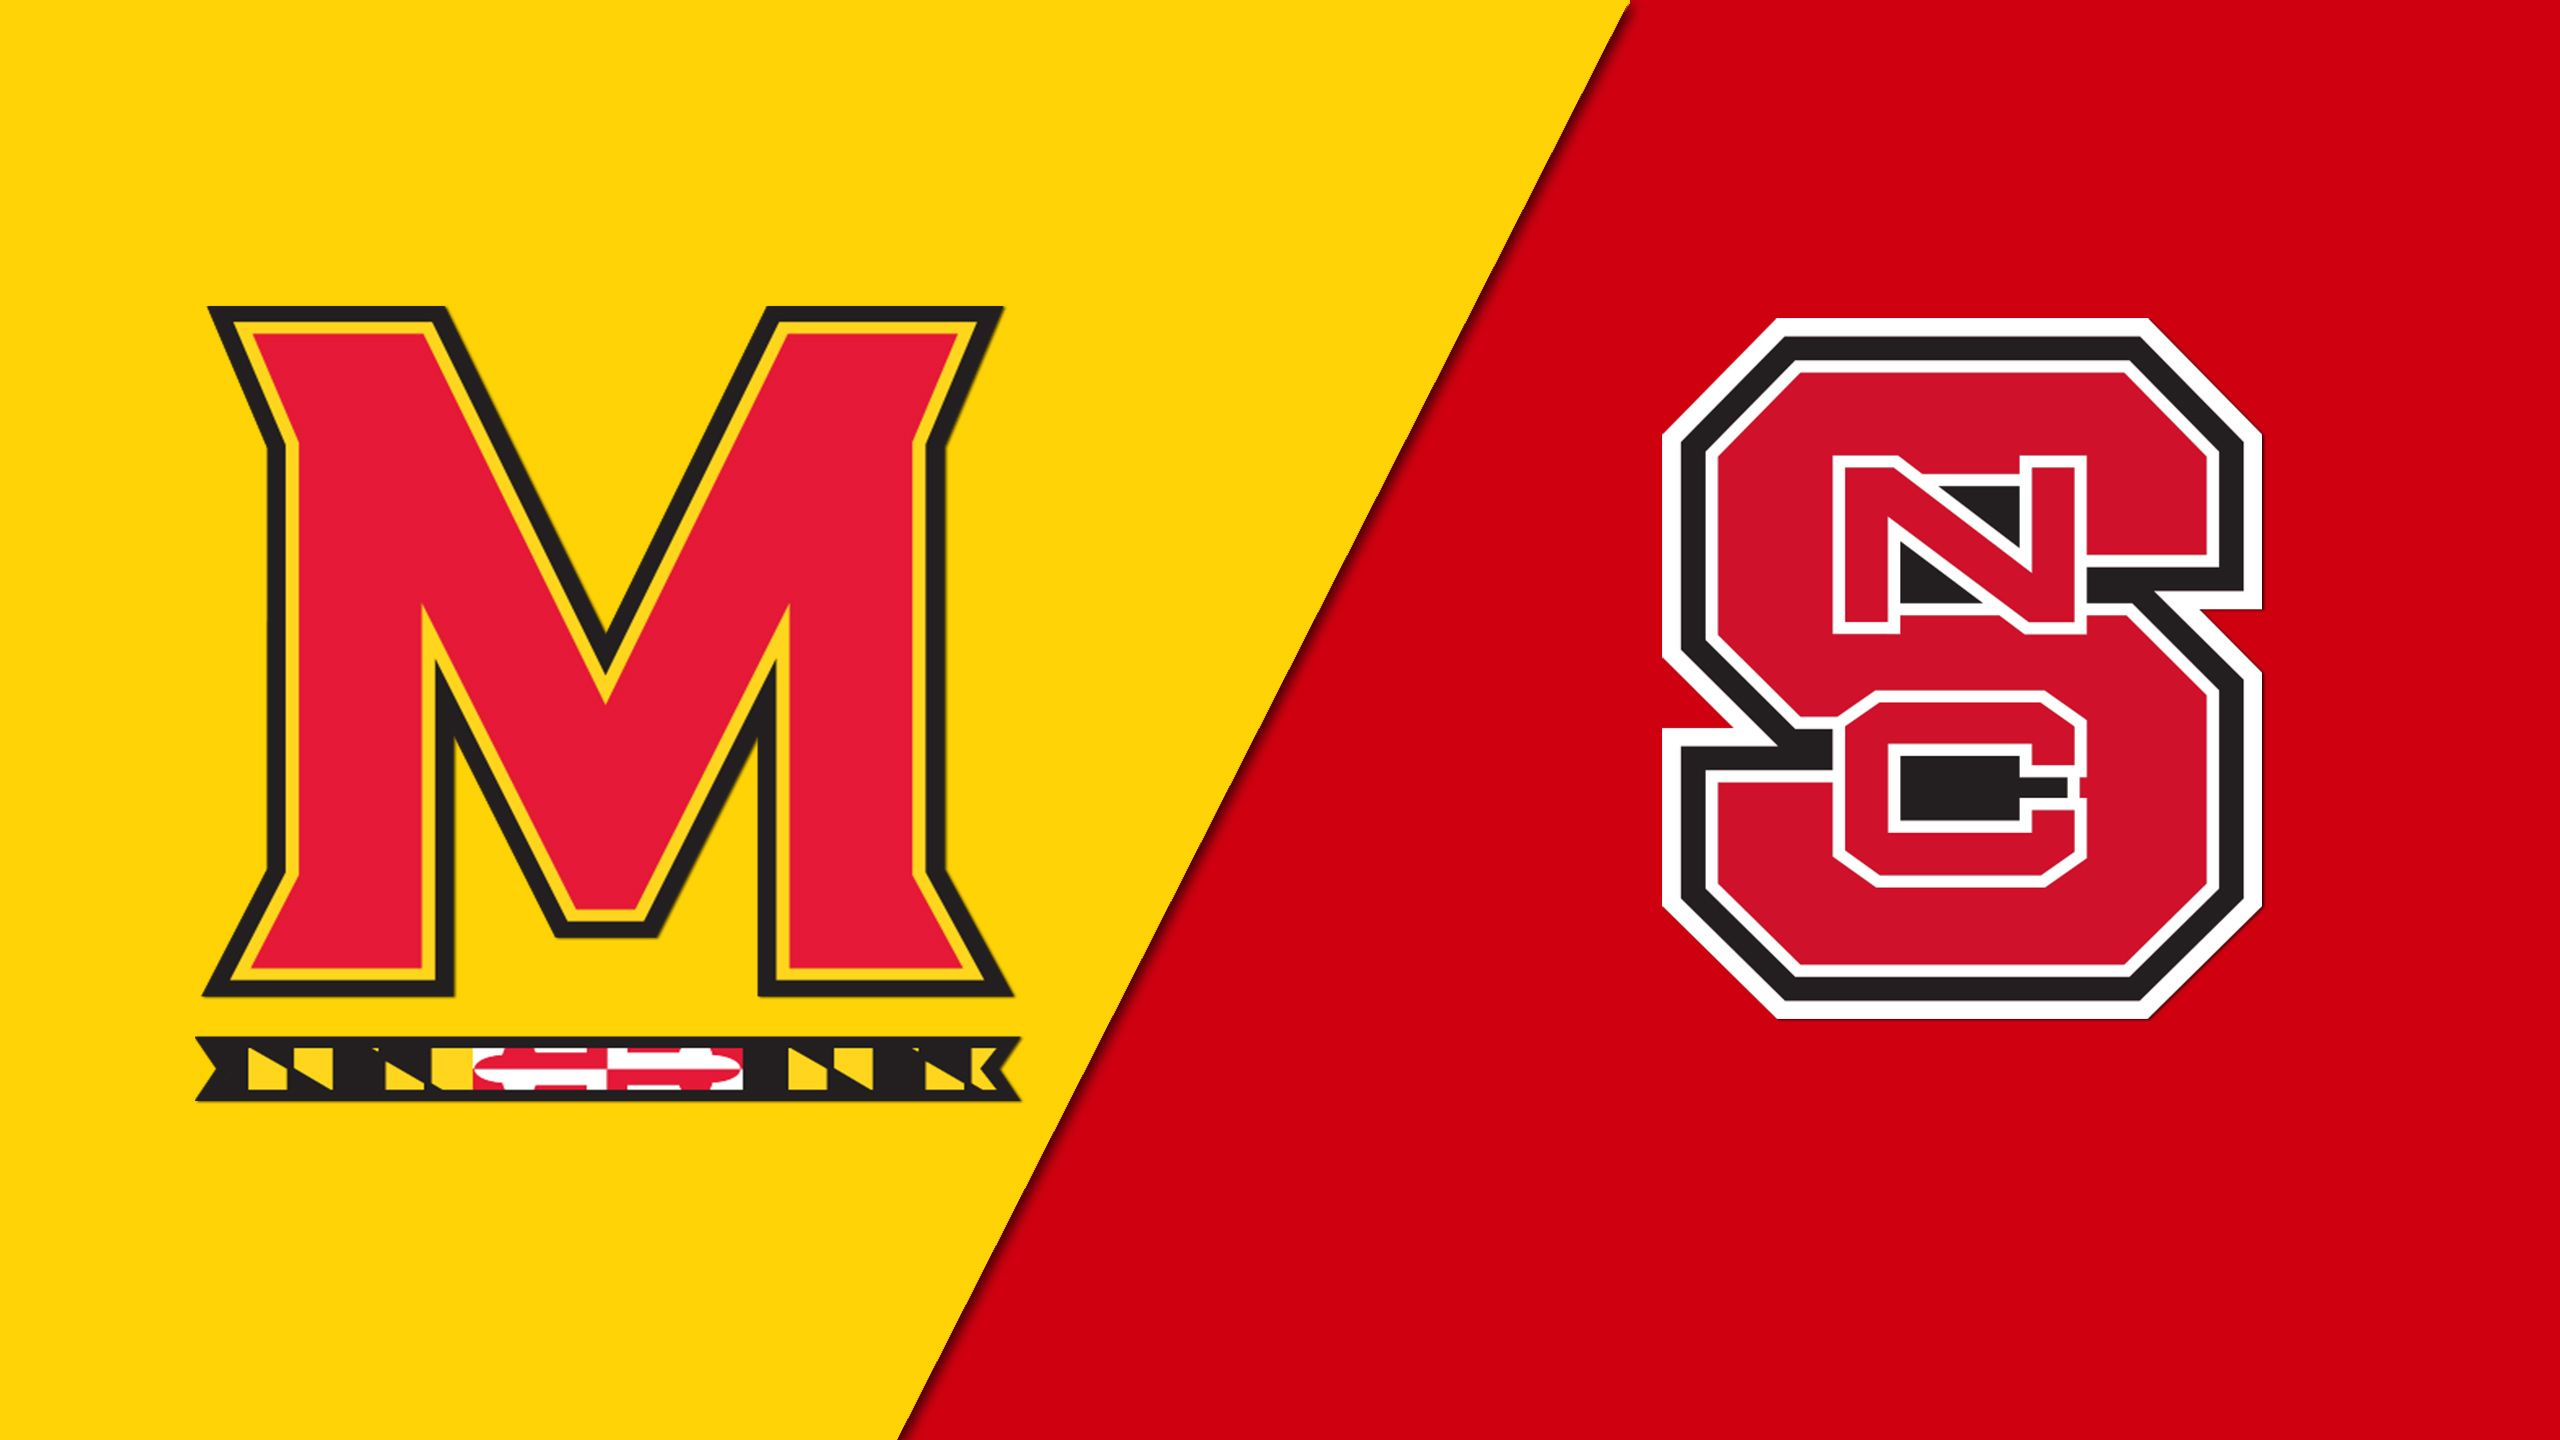 #5 Maryland vs. #4 NC State (Second Round) (NCAA Women's Basketball Championship)